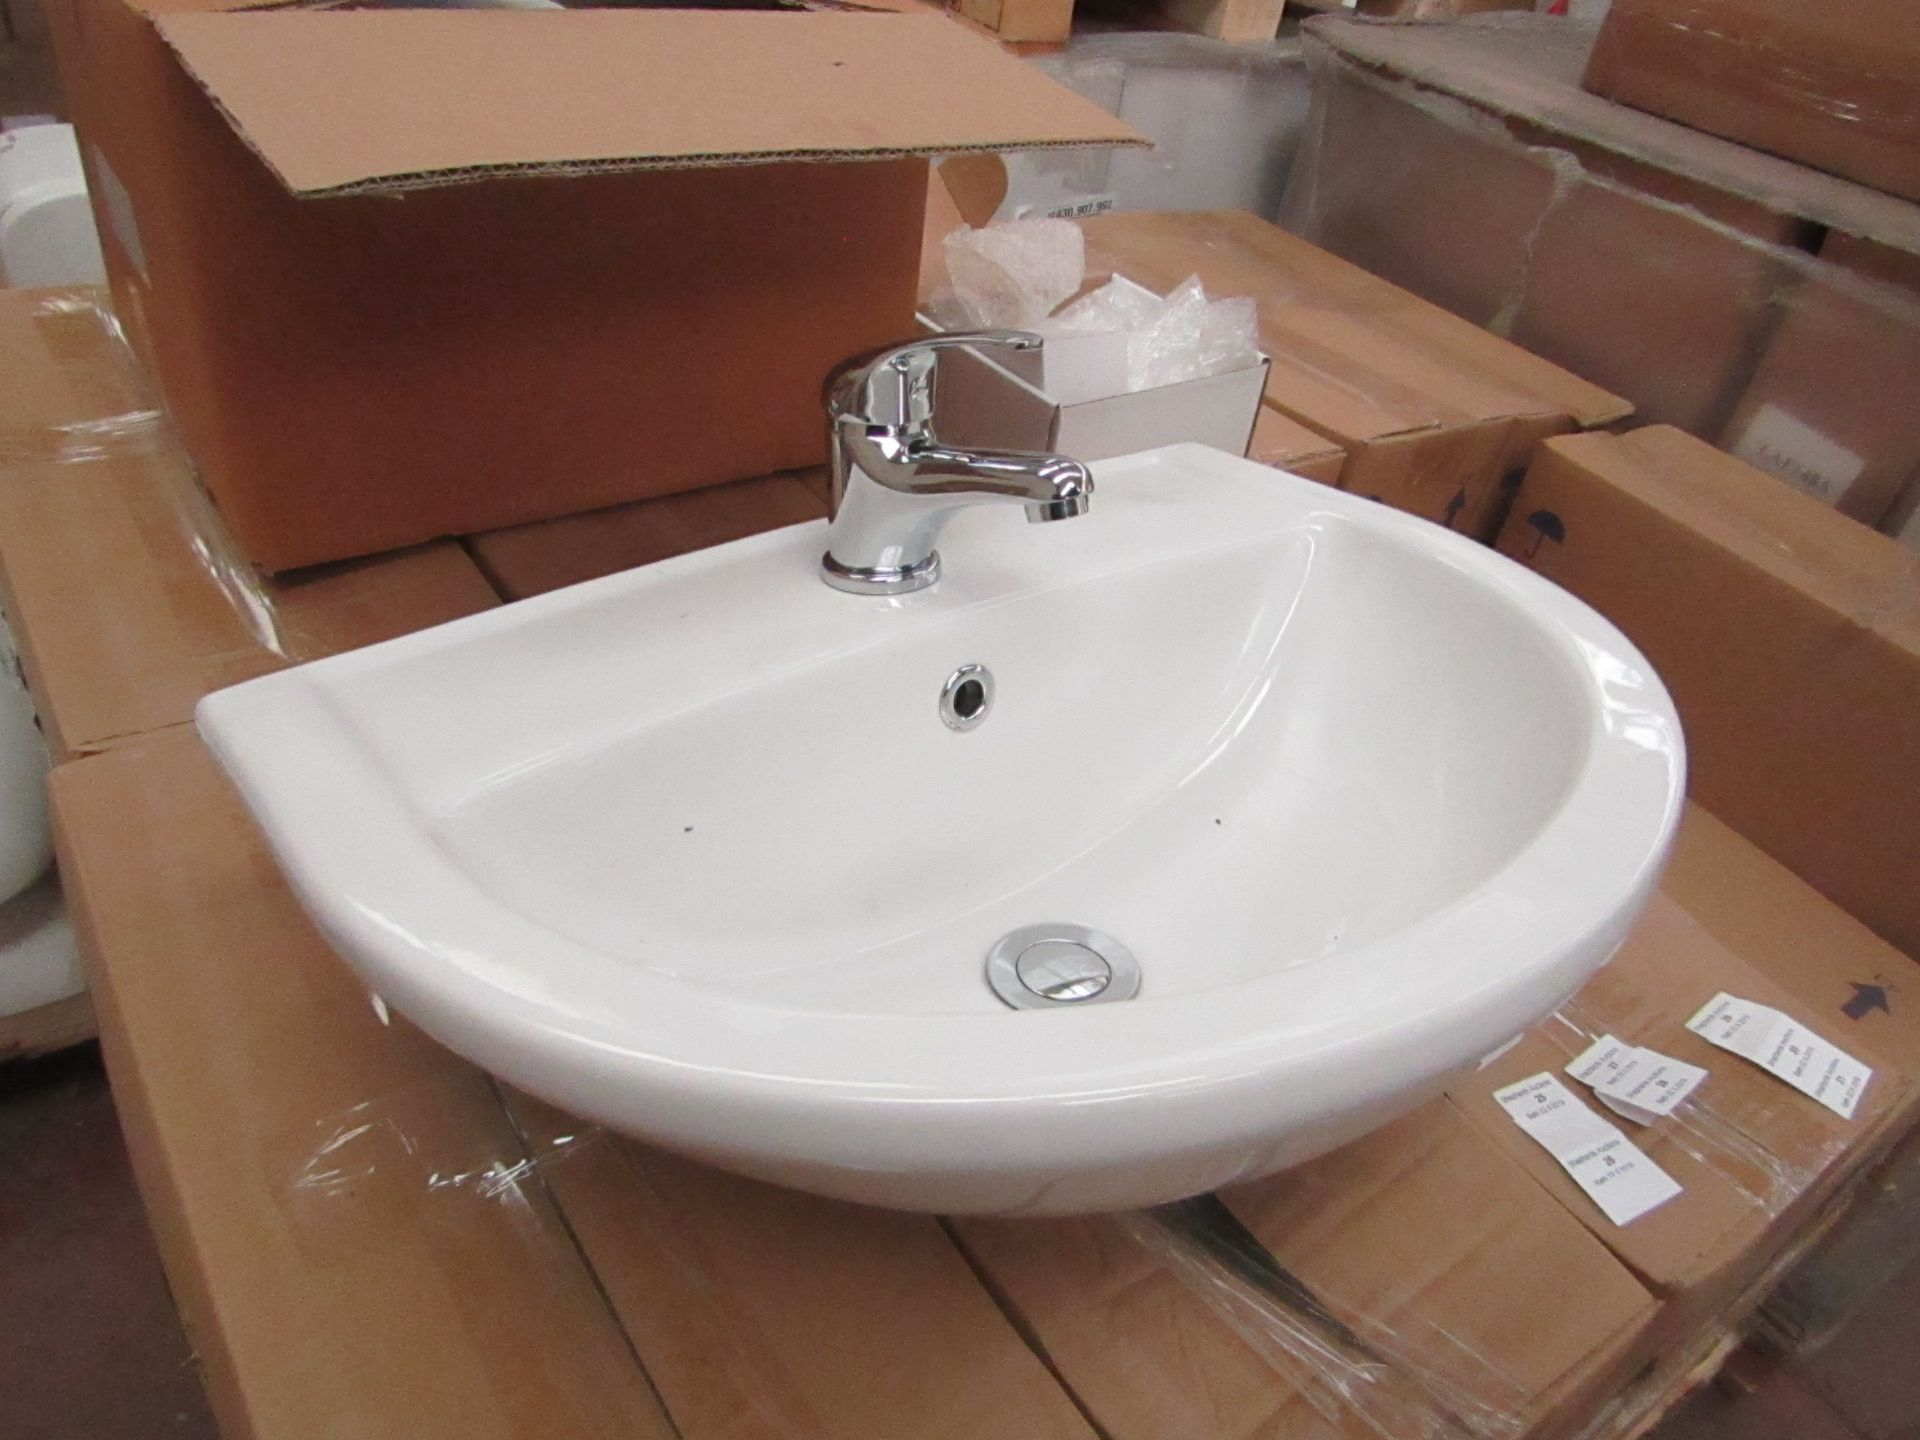 Lotto 27 - Lecico Remini 50cm 1 tap hole sink with mono block mixer tap, boxed and new